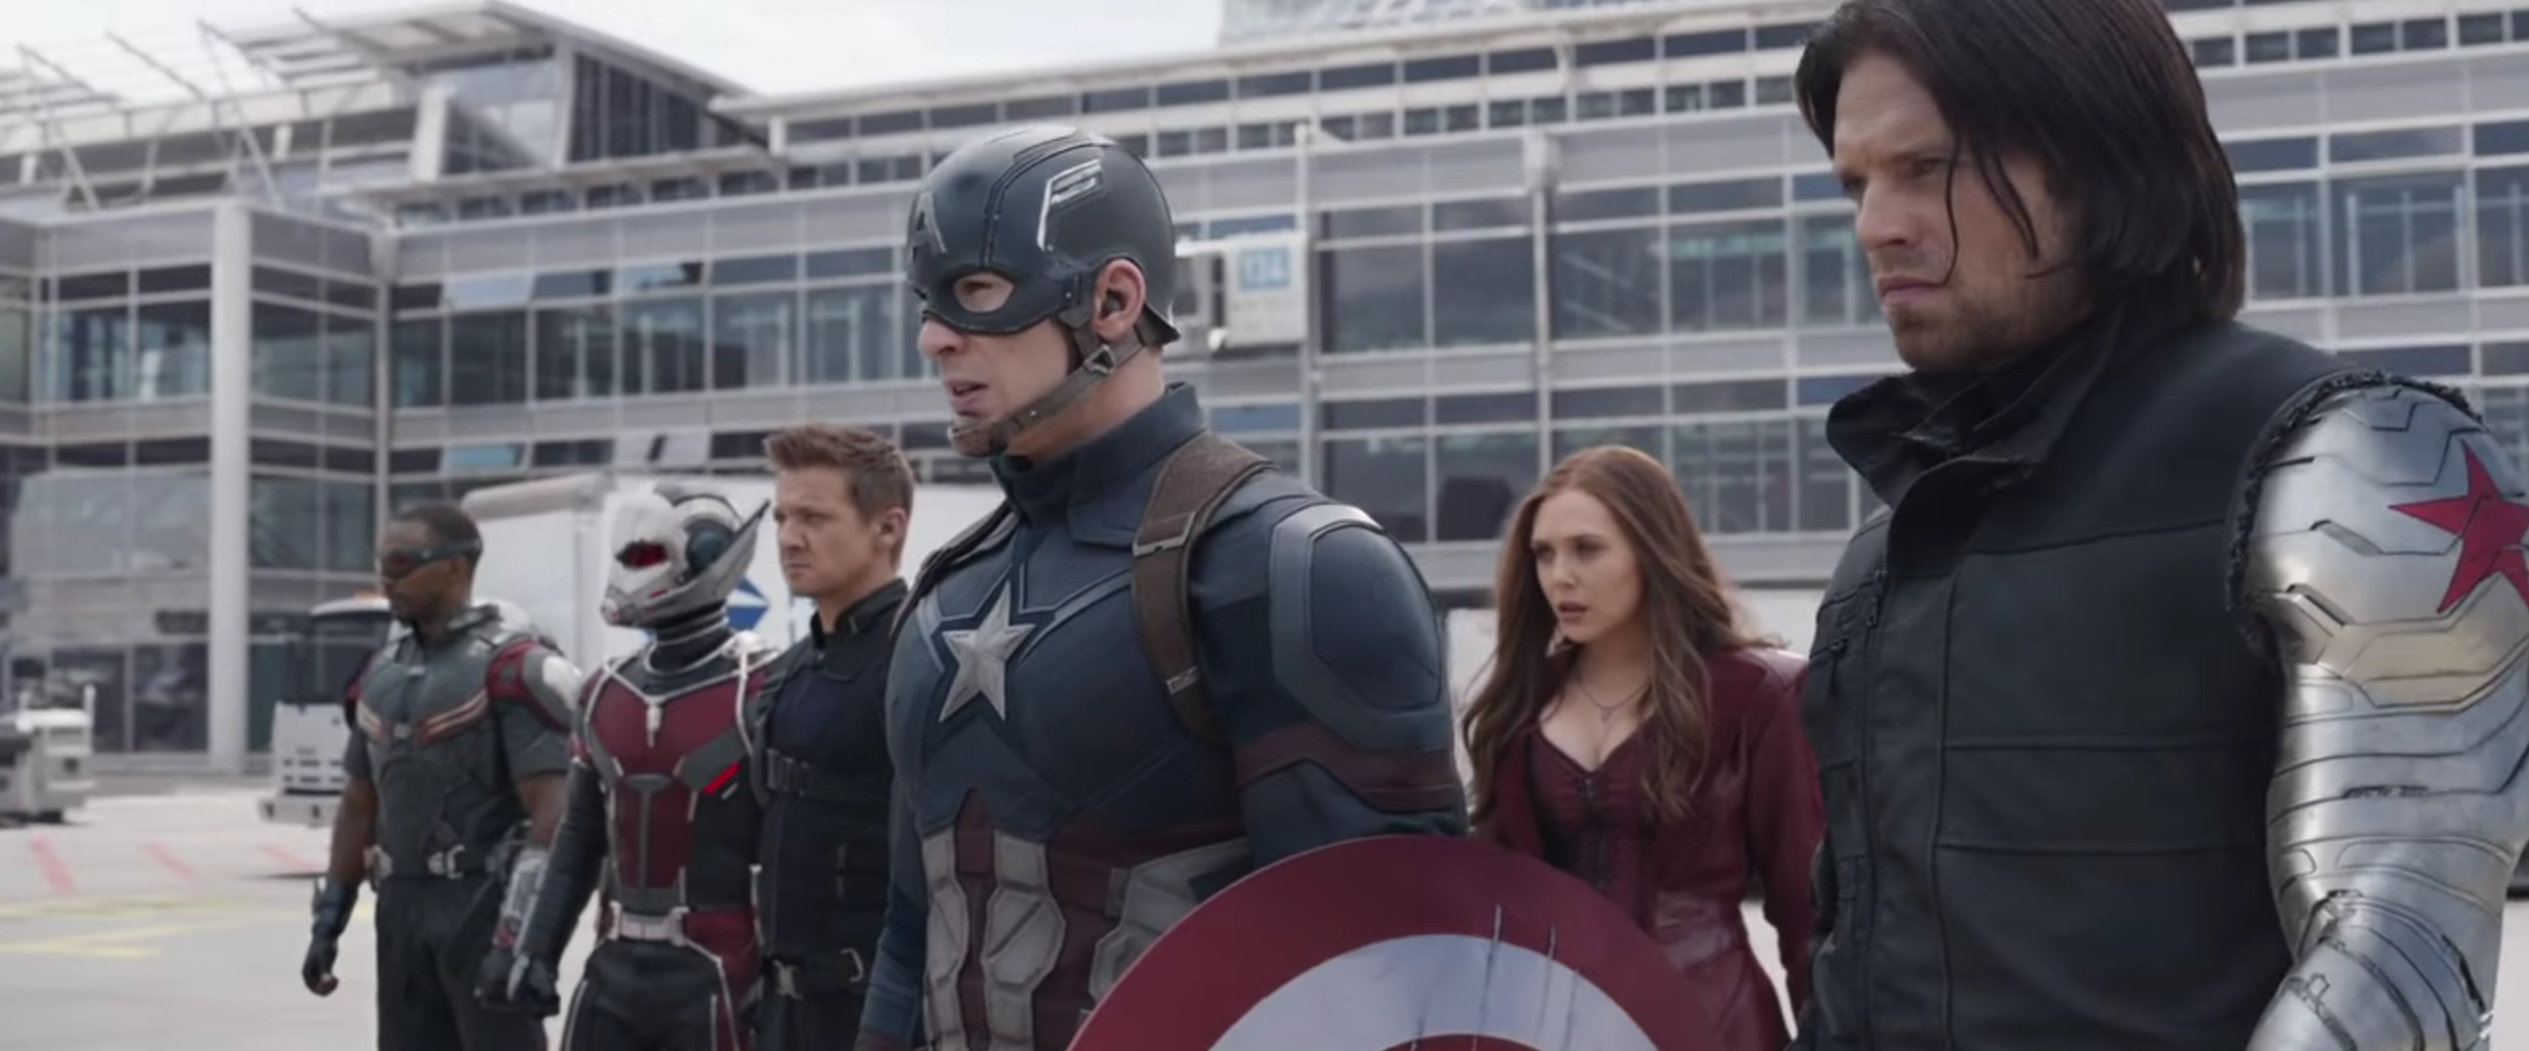 Hasil gambar untuk Avengers 4 Set Photo Shows the Return of Civil War's New Stark Tech